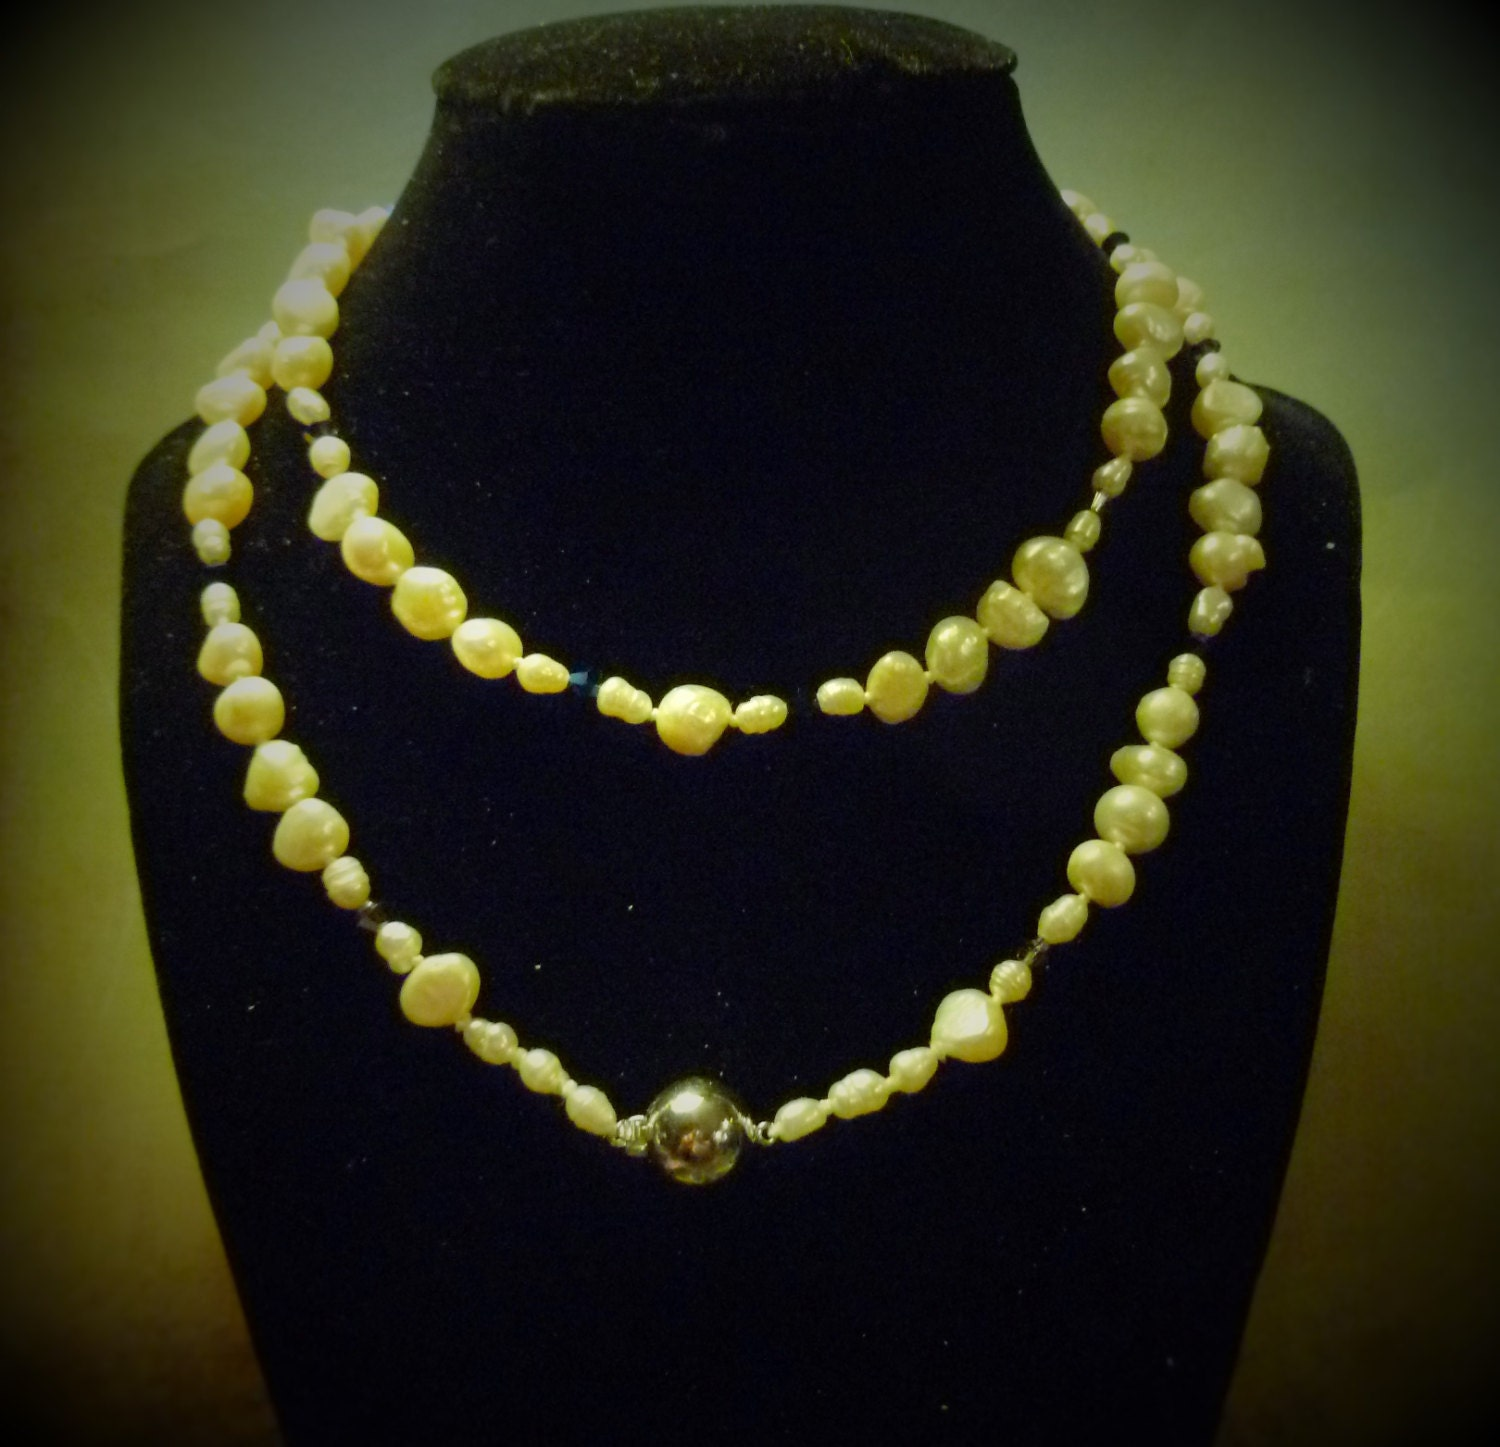 Wedding Day Pearls 32 Inch Necklace 9.25 Silver Clasp Hand Strung White Pearls with Swarovski Crystals